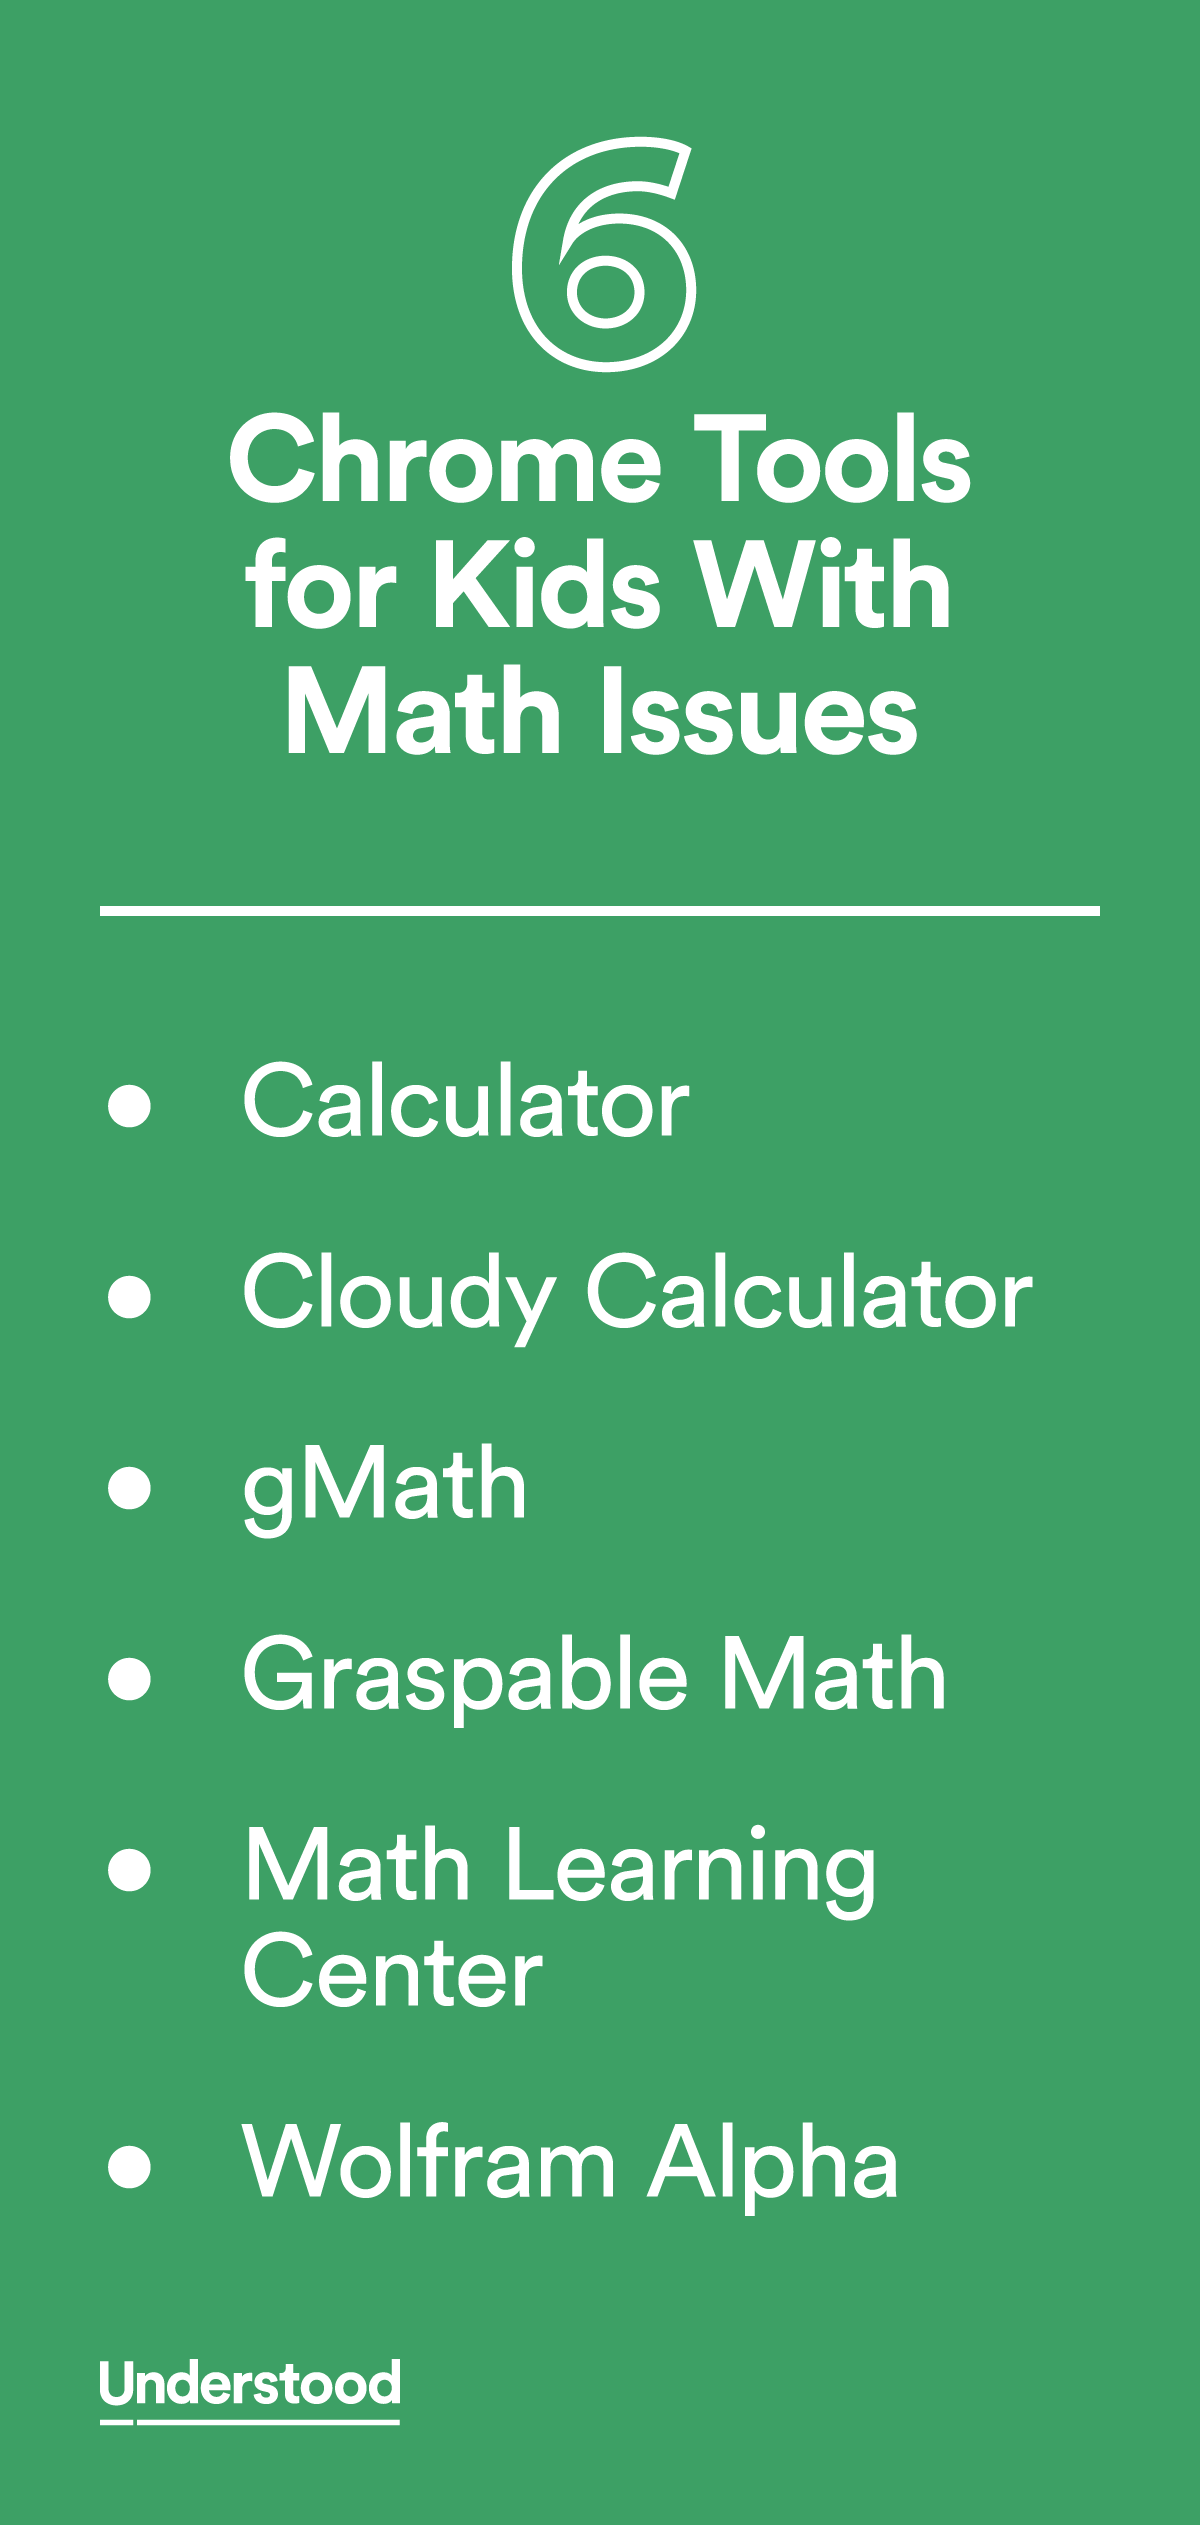 6 Chrome Tools for Kids With Math Issues | Assistive technology ...